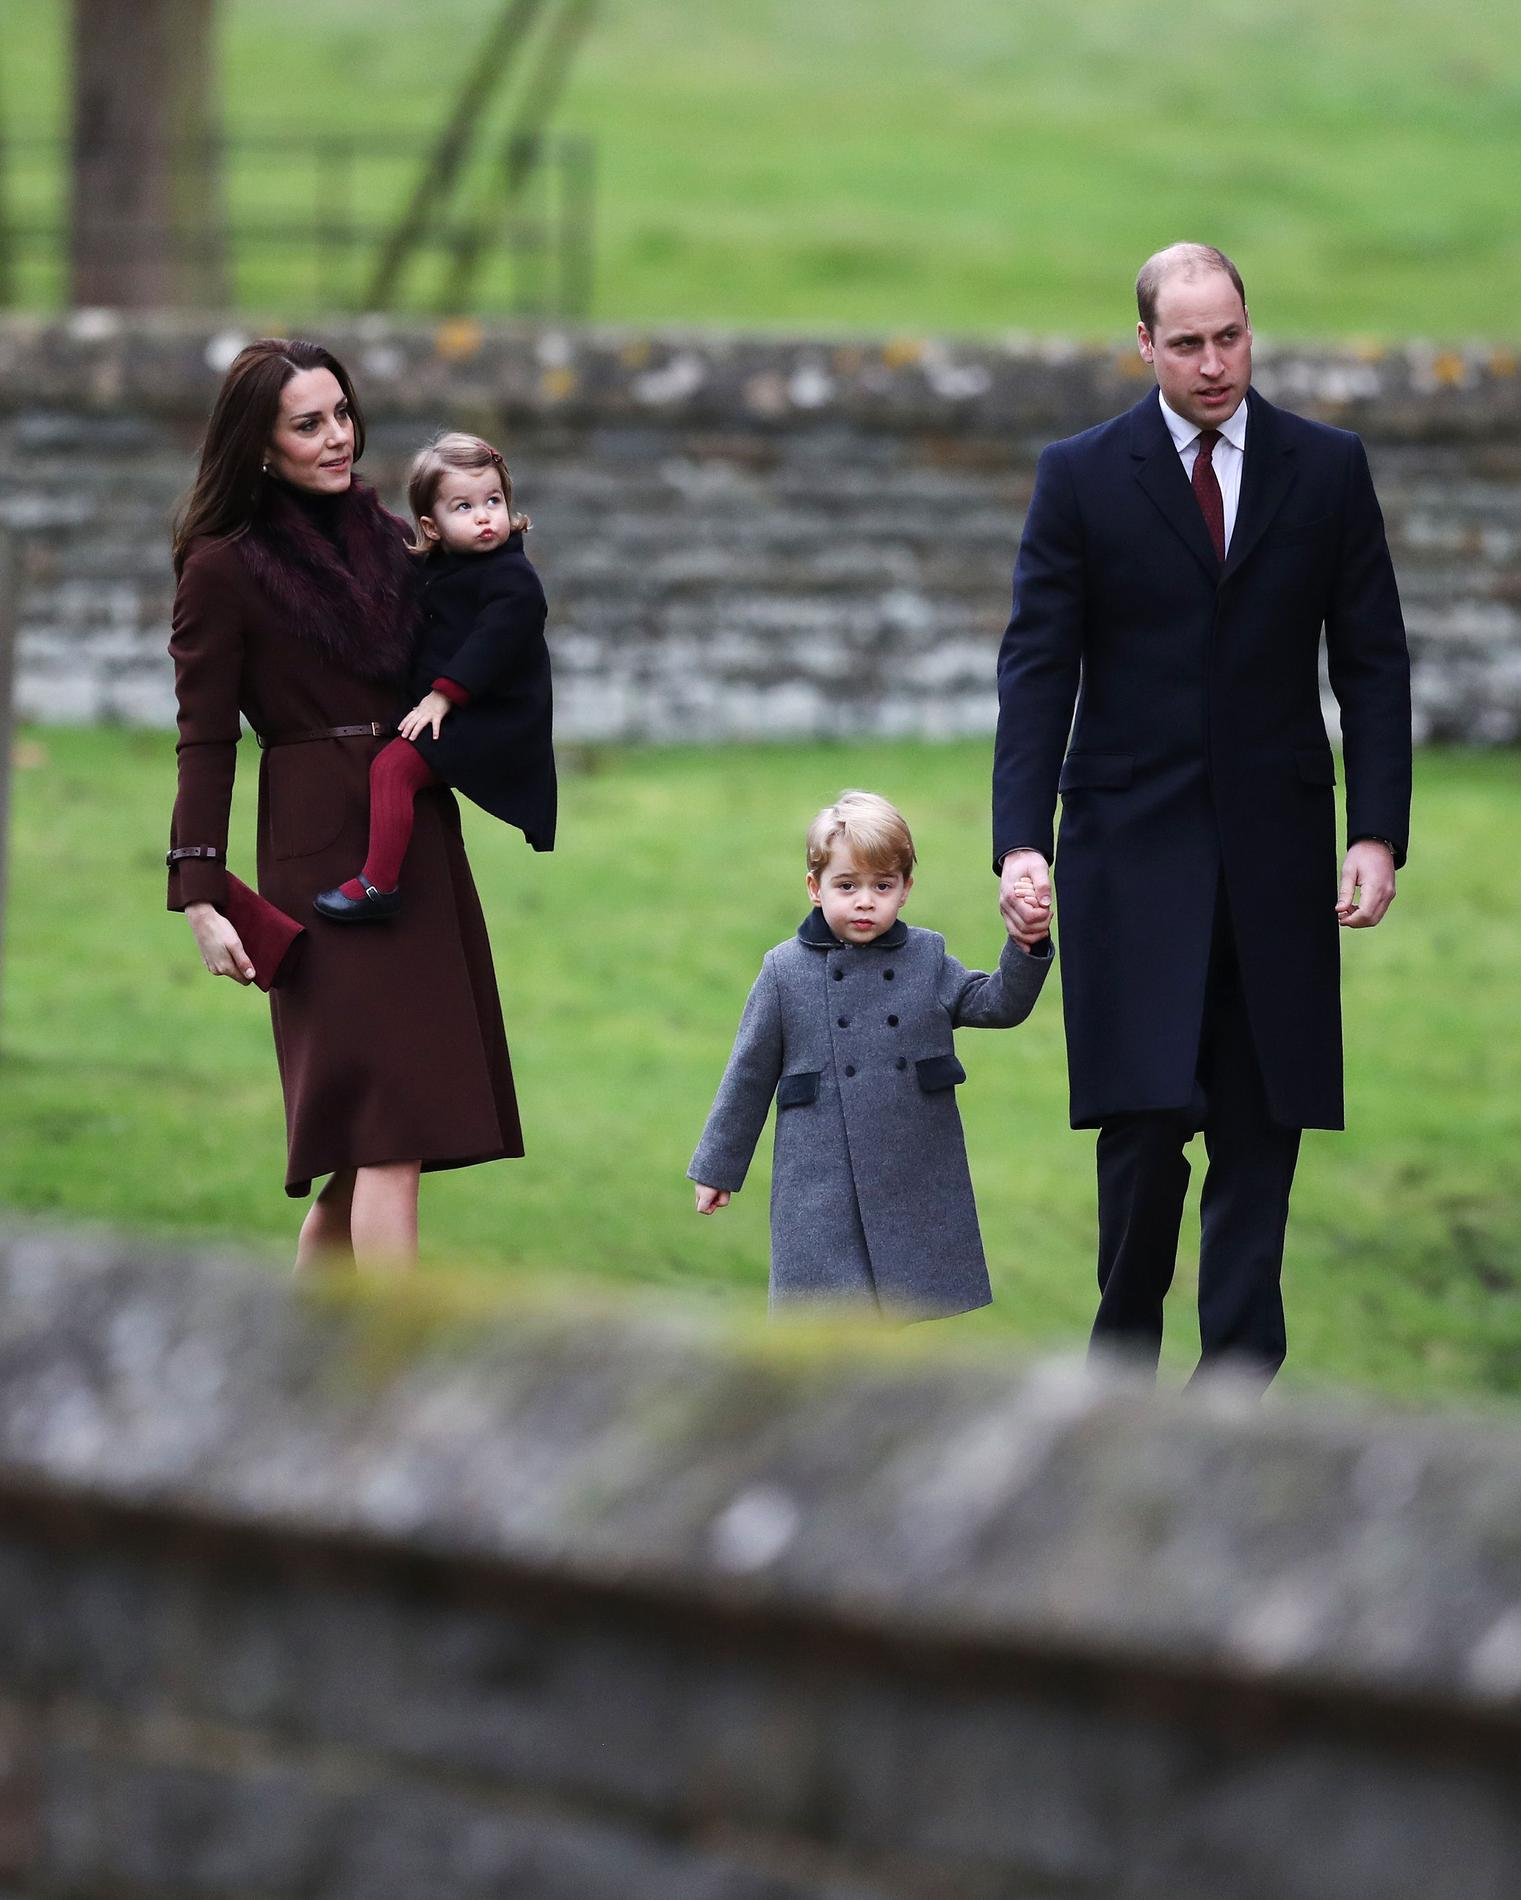 demenagement kate et william